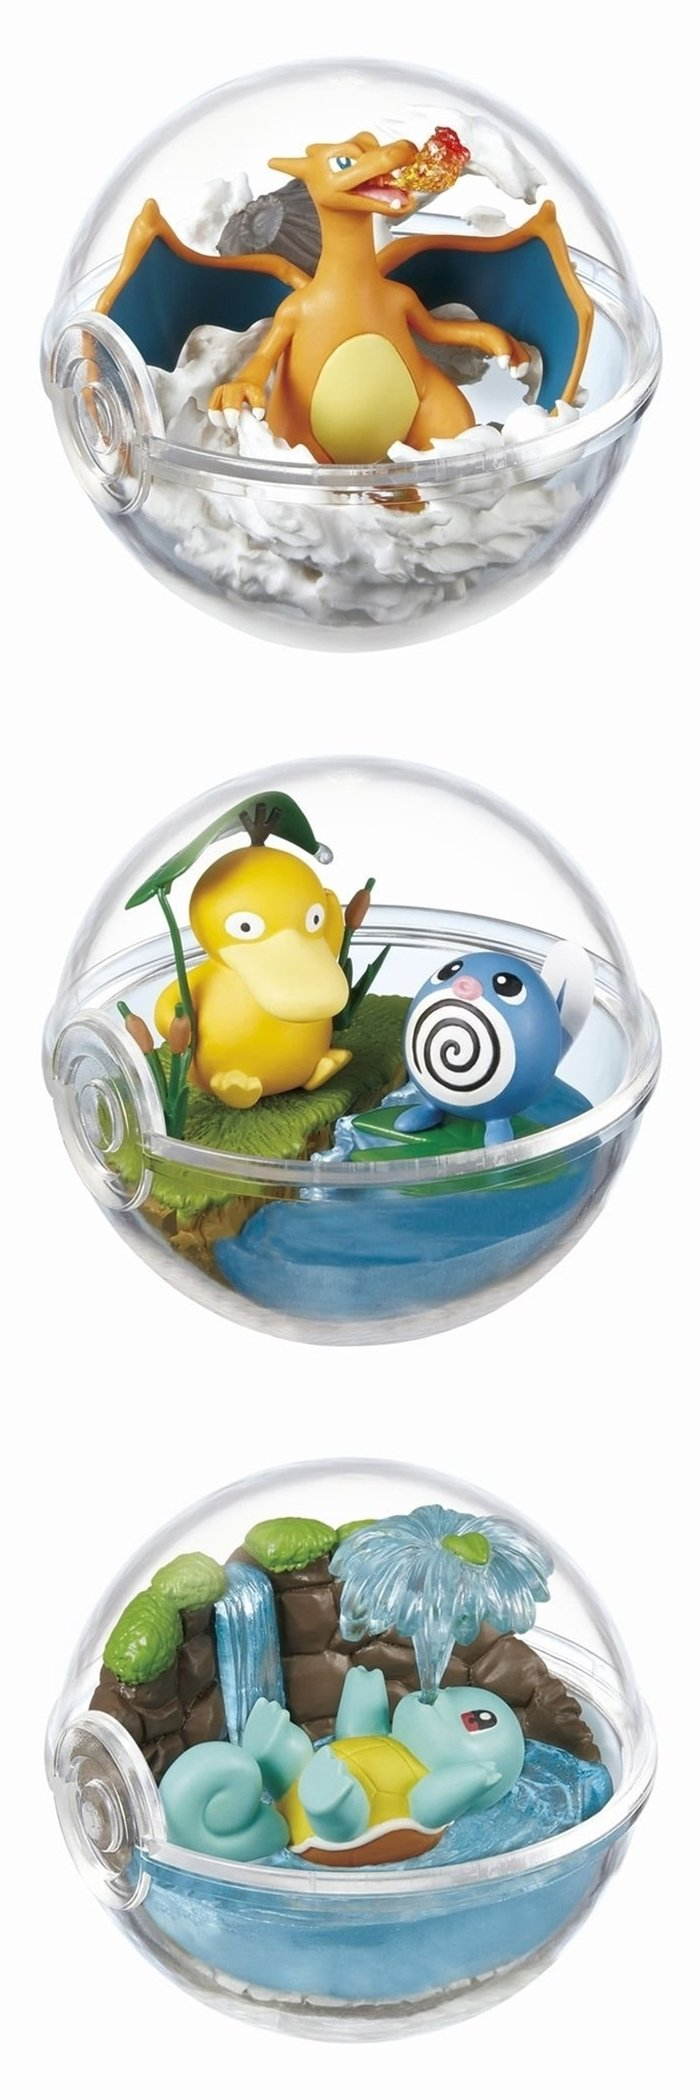 Re-ment Pokemon Candy Toy Terrarium 2 Collection (6 kinds in a set)